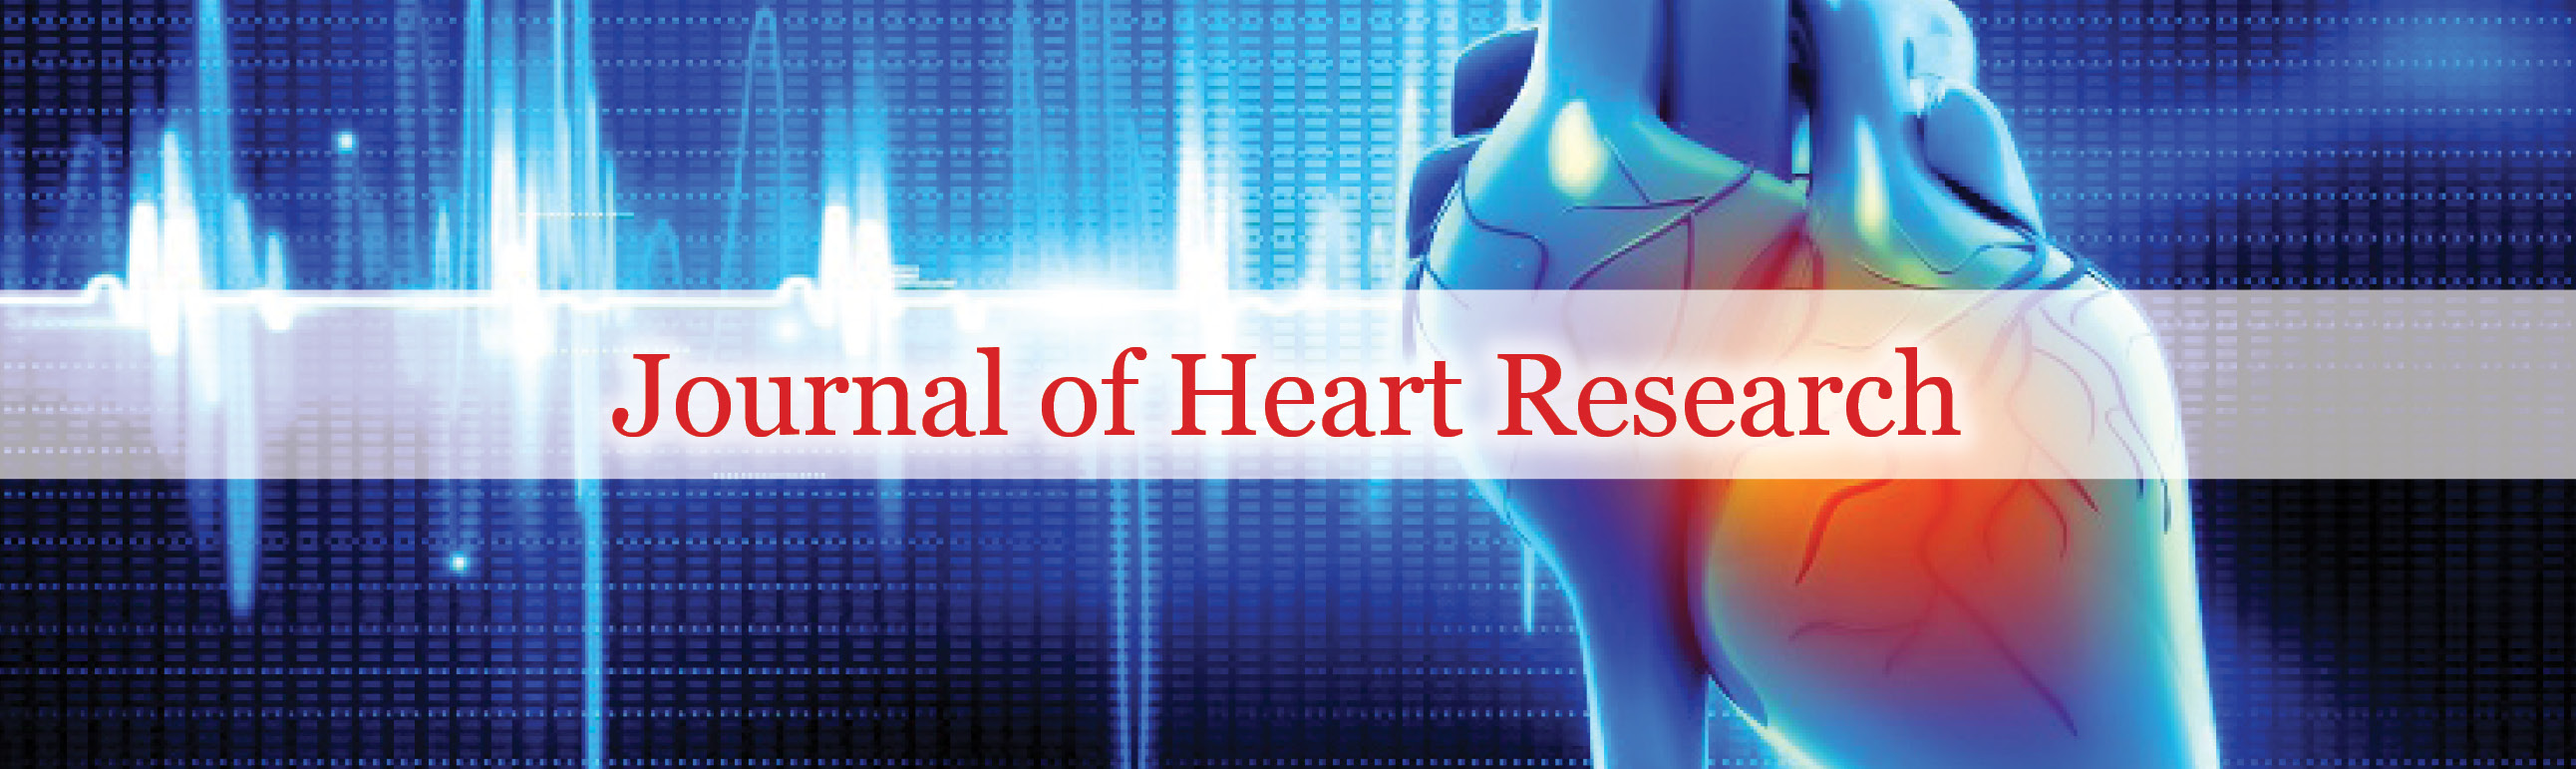 Journal of Heart Research